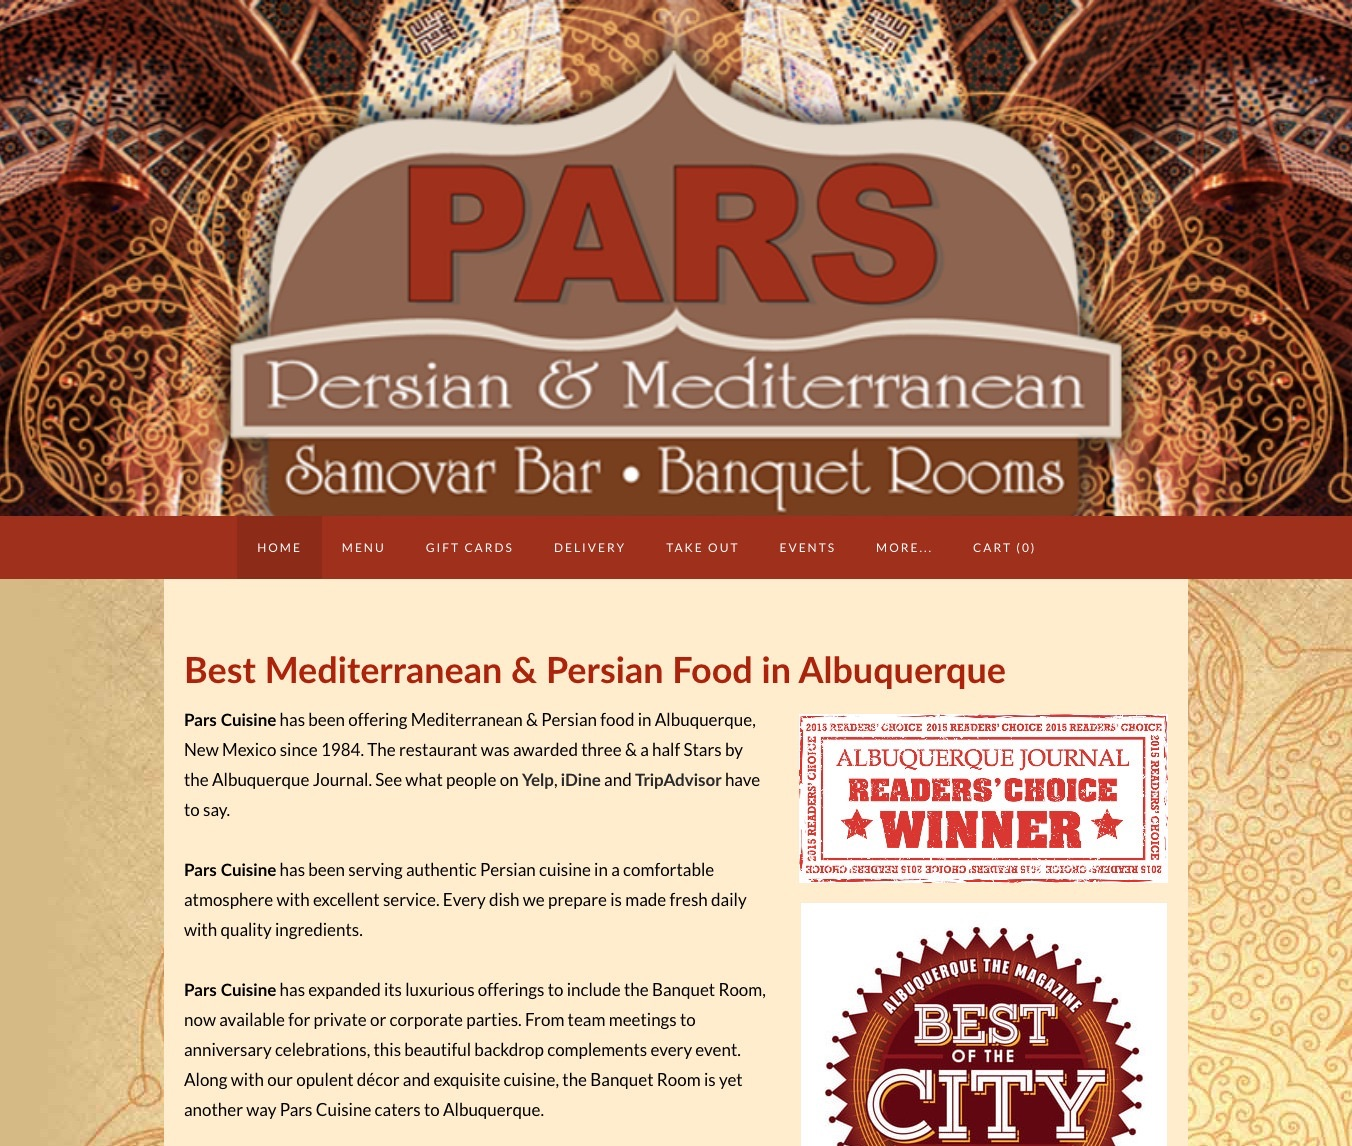 Pars Cuisine — Best Mediterranean & Persian Food in Albuquerque